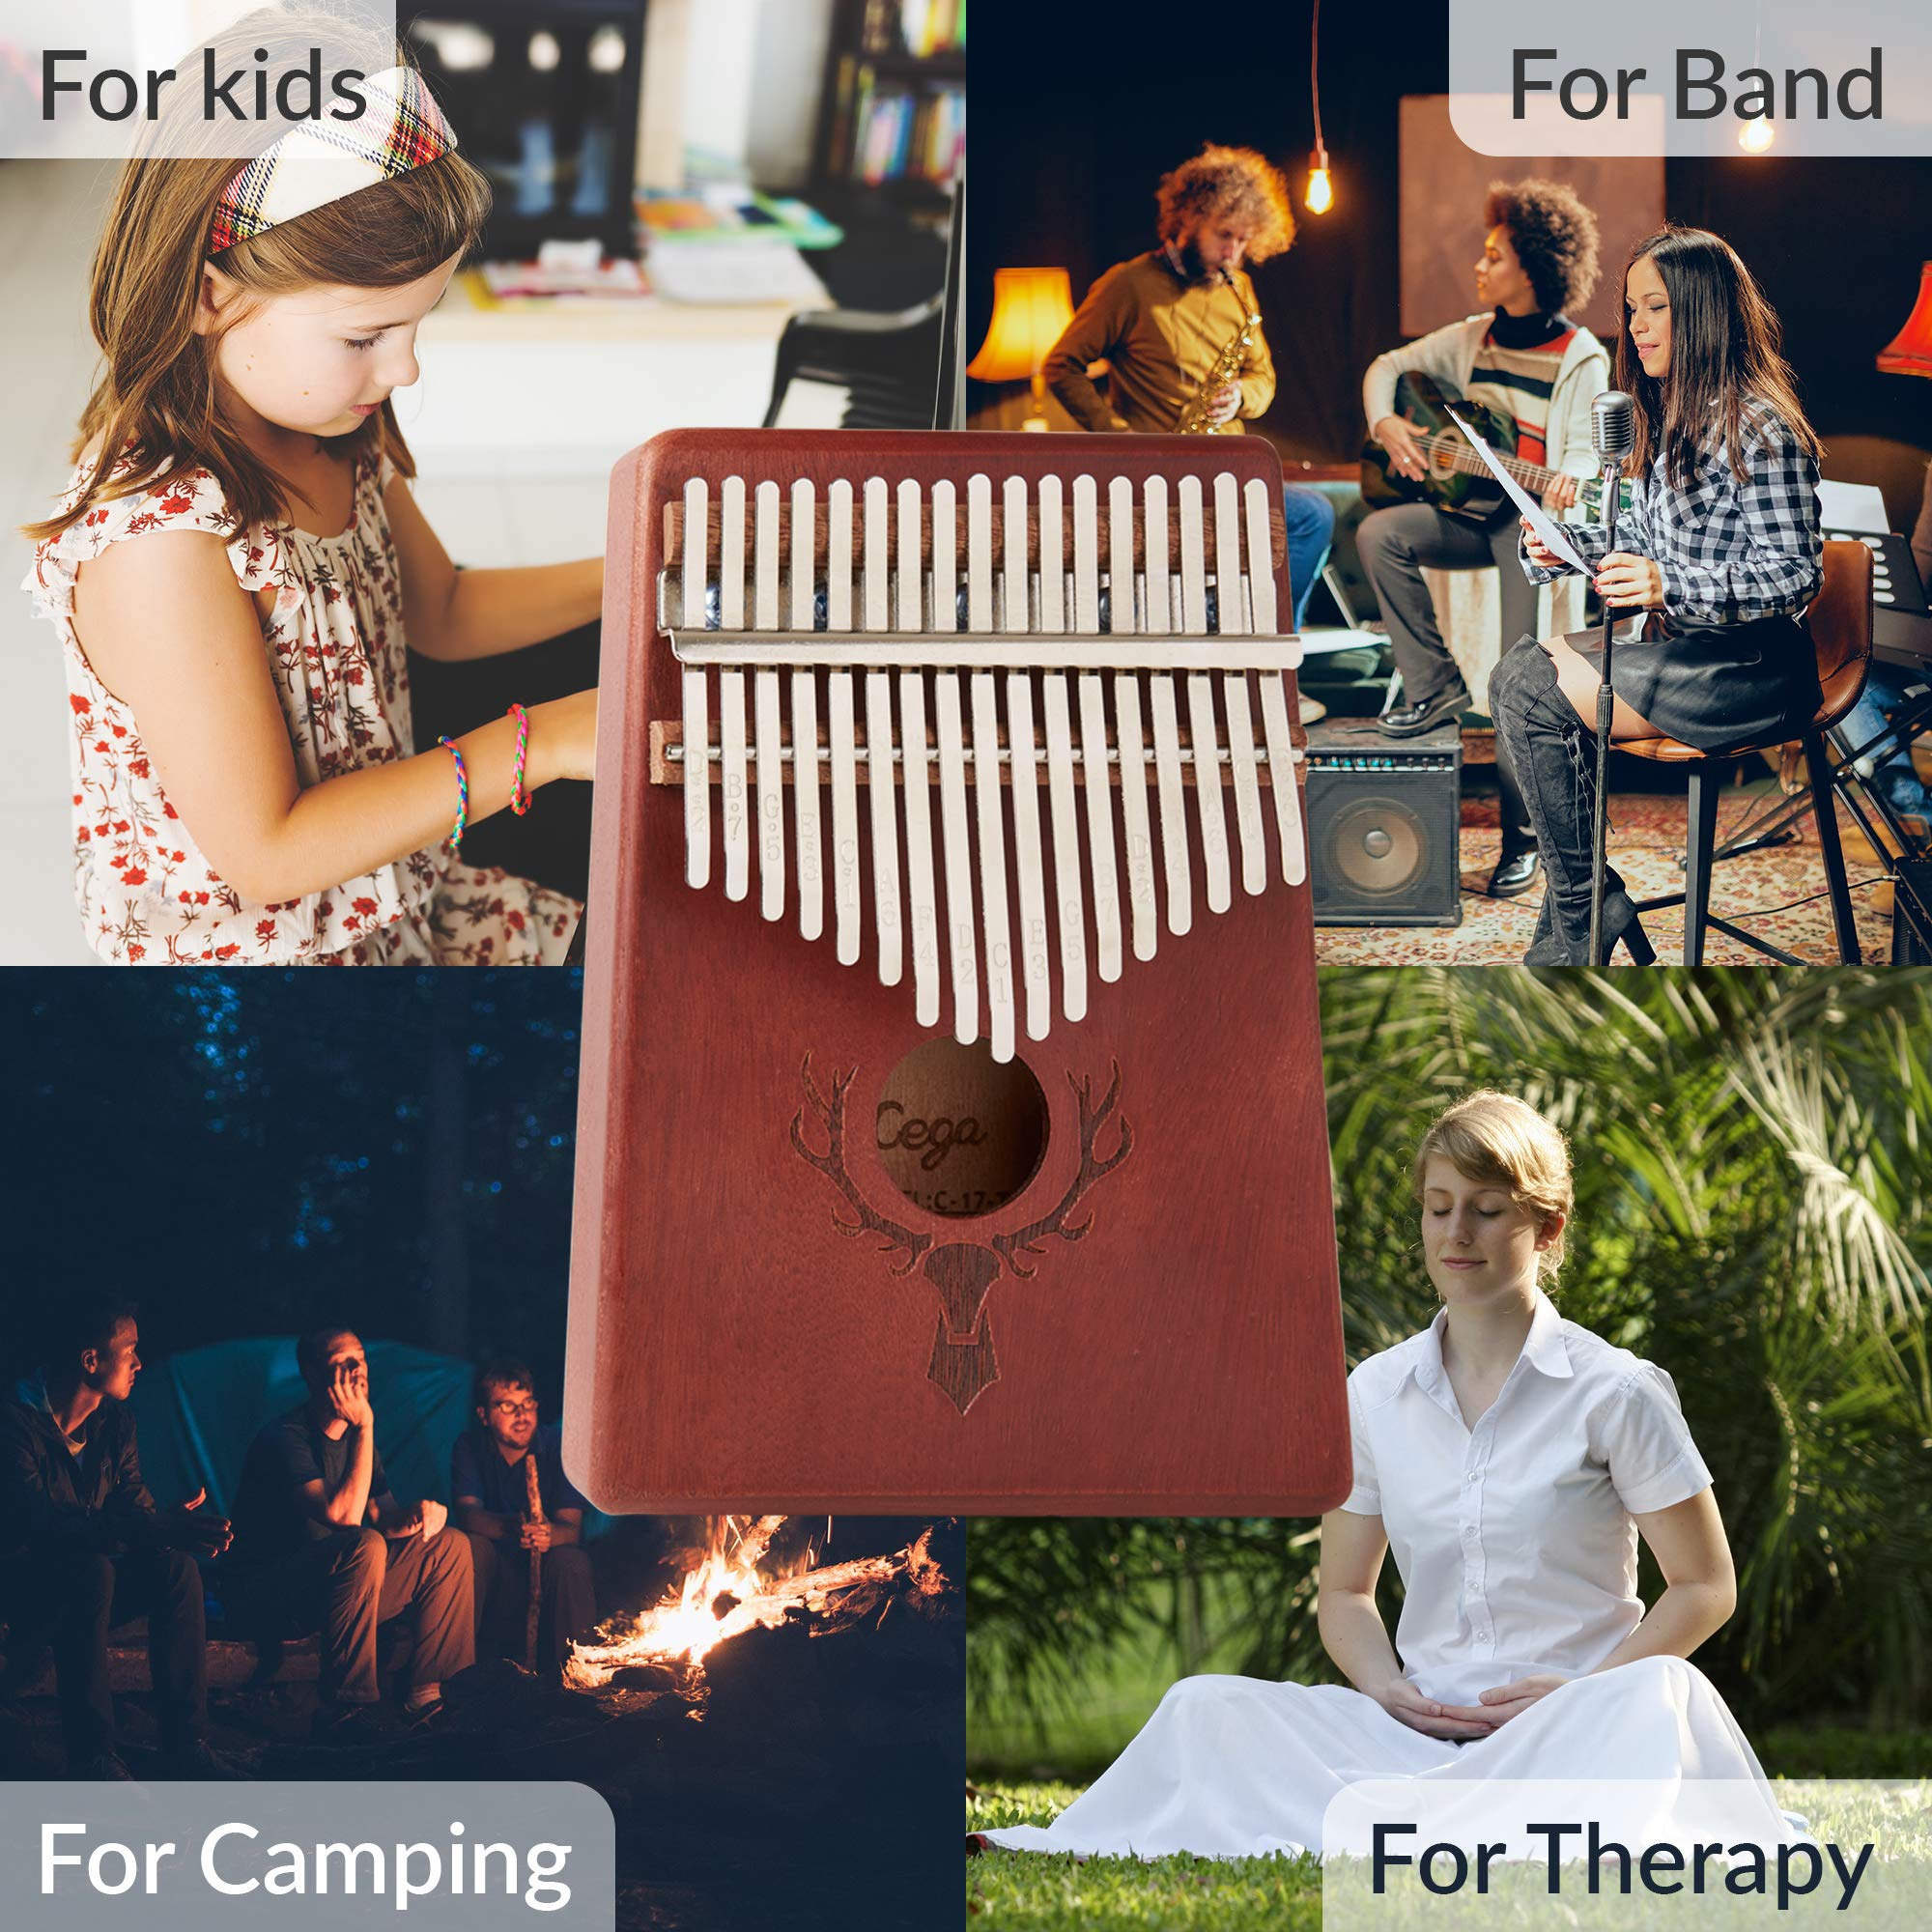 TimberTunes 17 Key Kalimba Thumb Finger Piano Therapy Musical Instrument for Adults Children, Solid Mahogany Wood, Engraved Elk Antler,Tuning Hammer and Music Book, Engraved Keys, Velvet Case, Unique by Timbertunes (Image #3)